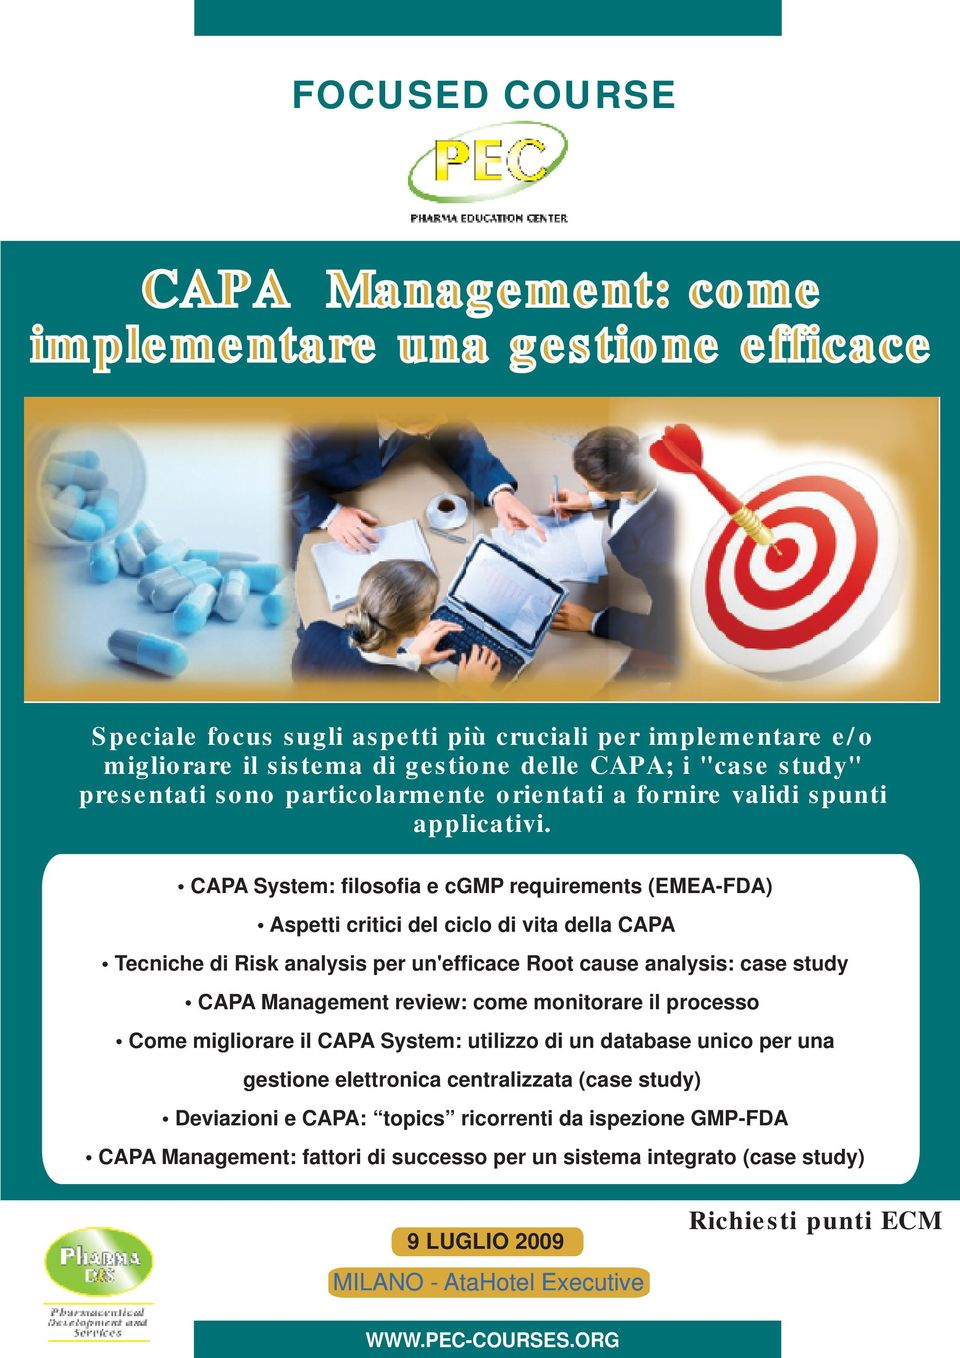 CAPA System: filosofia e cgmp requirements (EMEA-FDA) Aspetti critici del ciclo di vita della CAPA Tecniche di Risk analysis per un'efficace Root cause analysis: case study CAPA Management review: